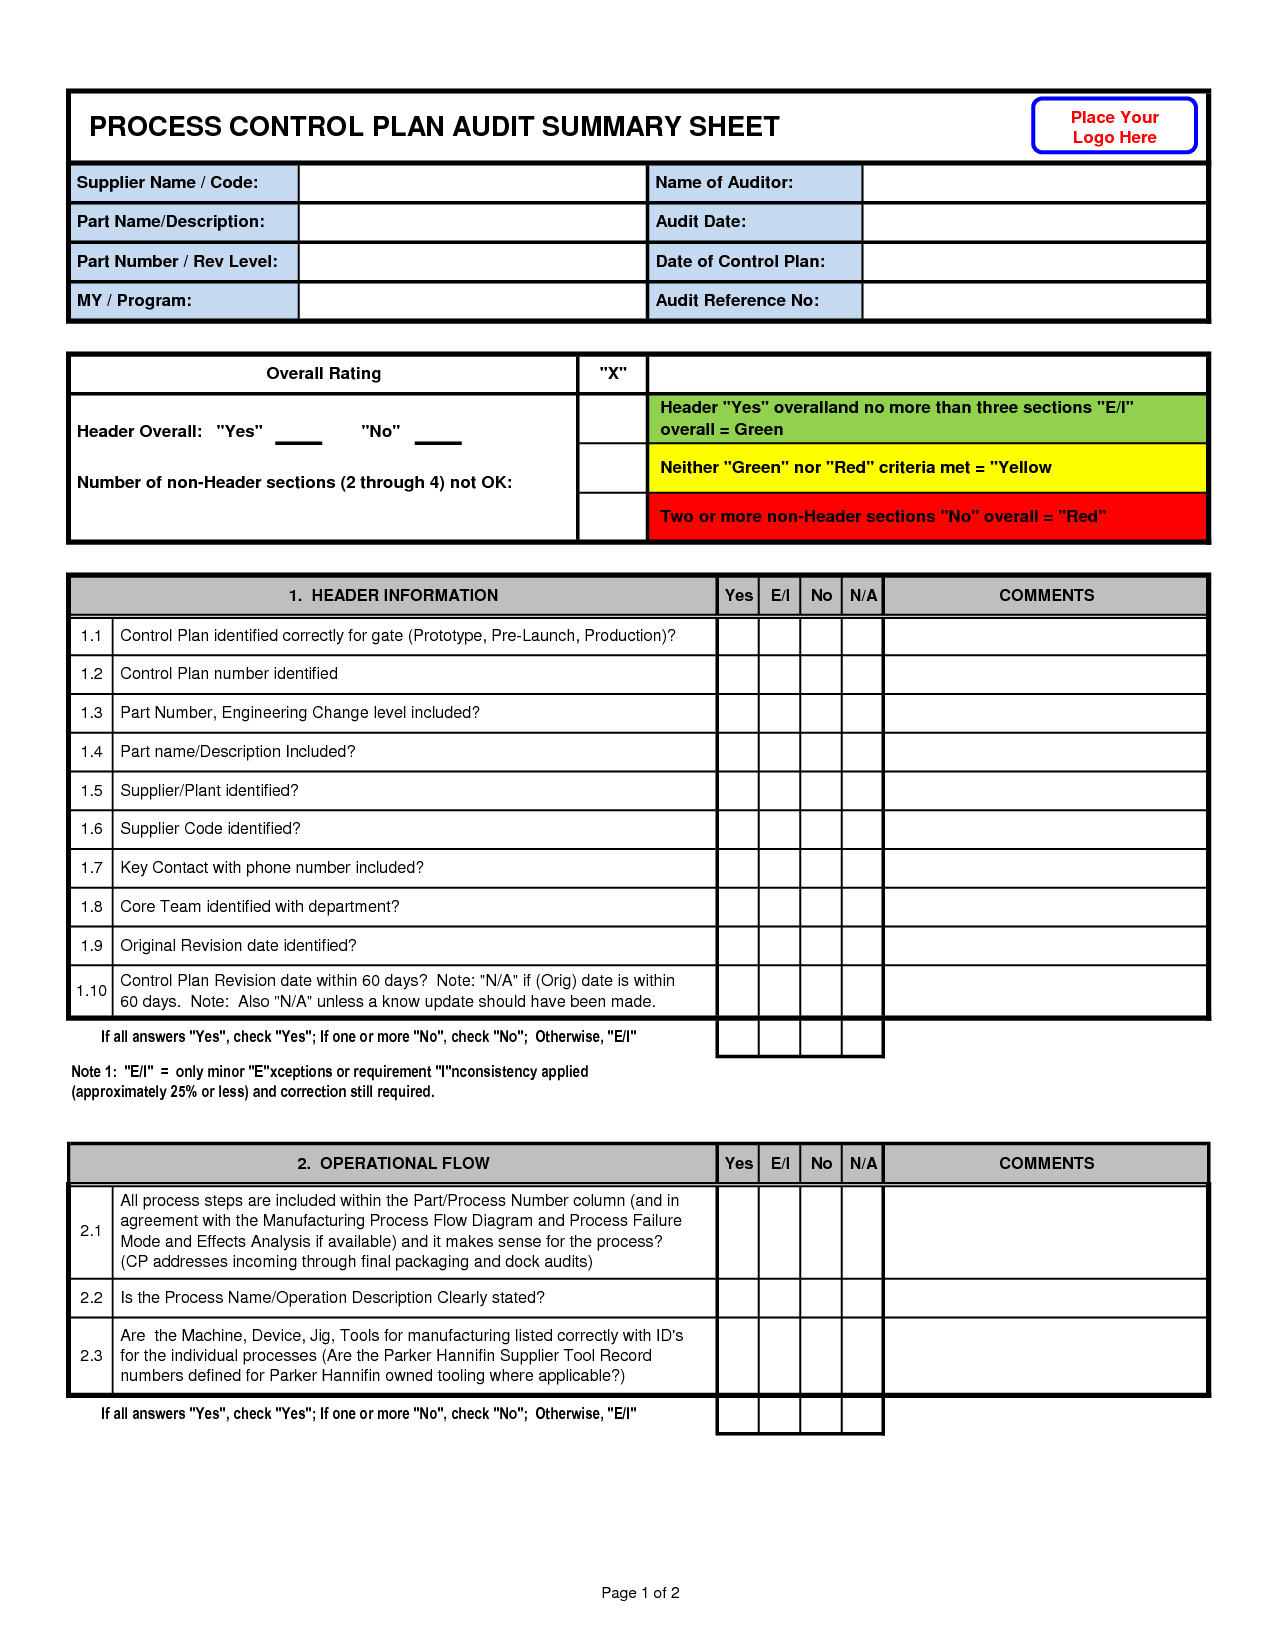 Awesome Process Control Plan Audit Summary Sheet Template